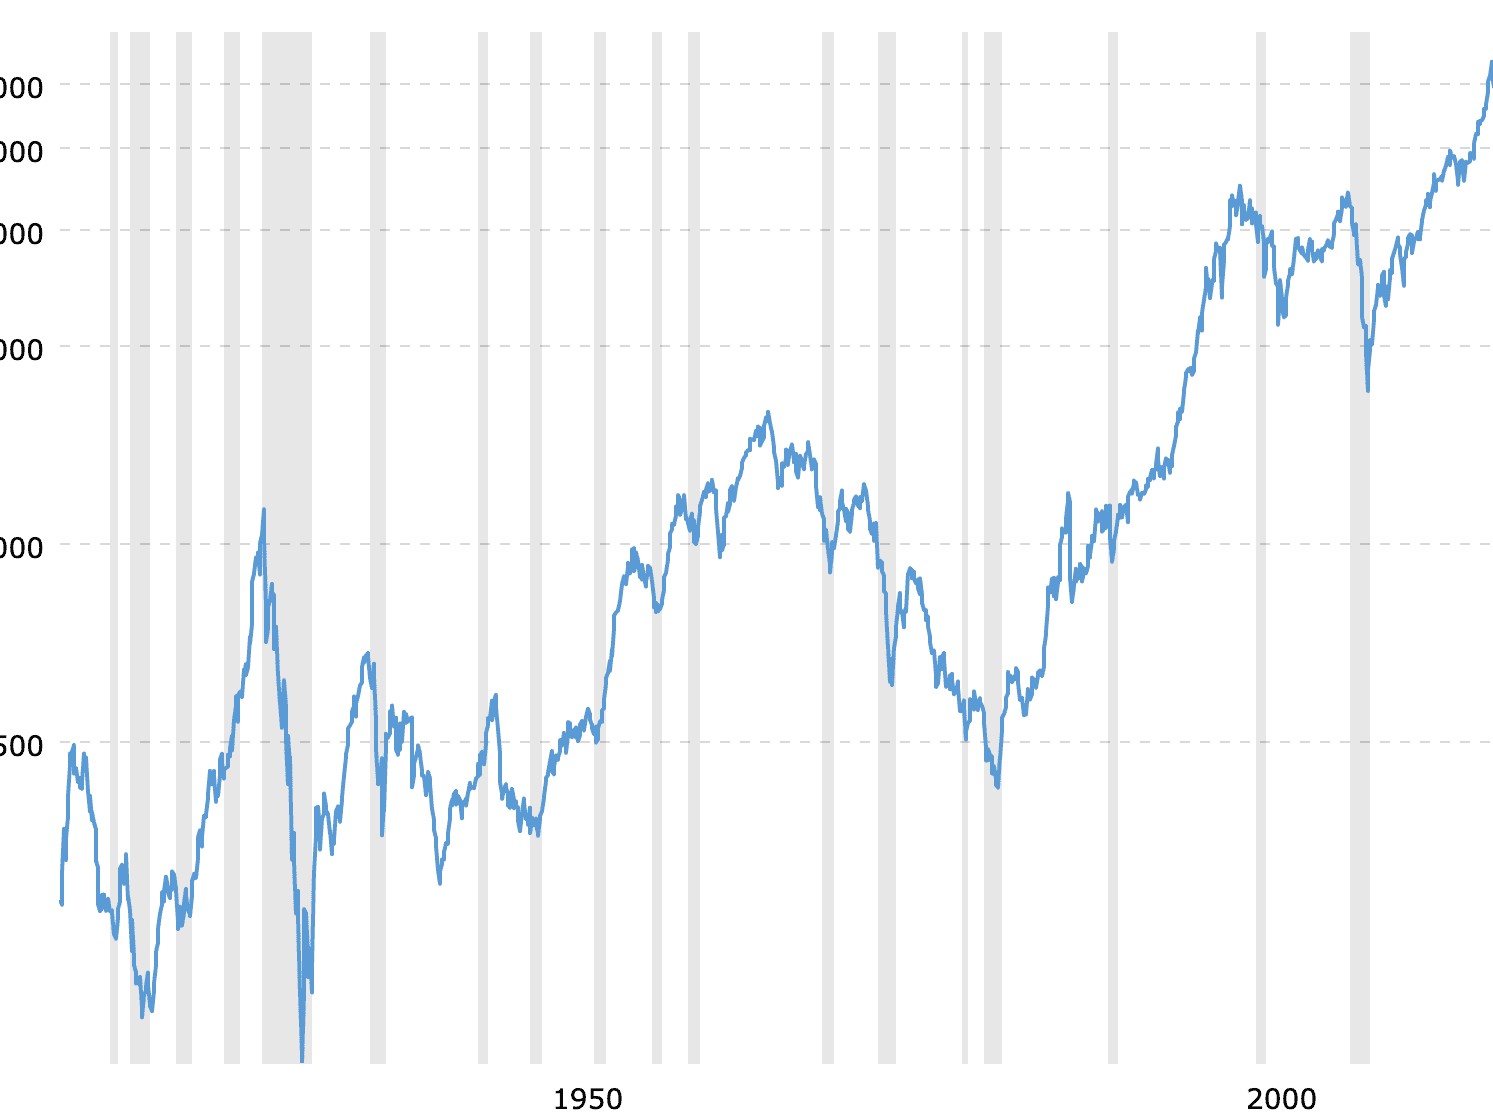 The Dow Jones Industrial Average (DJIA) was created in 1896 and today is the most widely referenced stock market indicator. It's open for trading from 9:30 a.m. to 4 p.m. daily, except weekends and holidays. The chart shows Dow Jones Industrial Average Performance over 100 years.